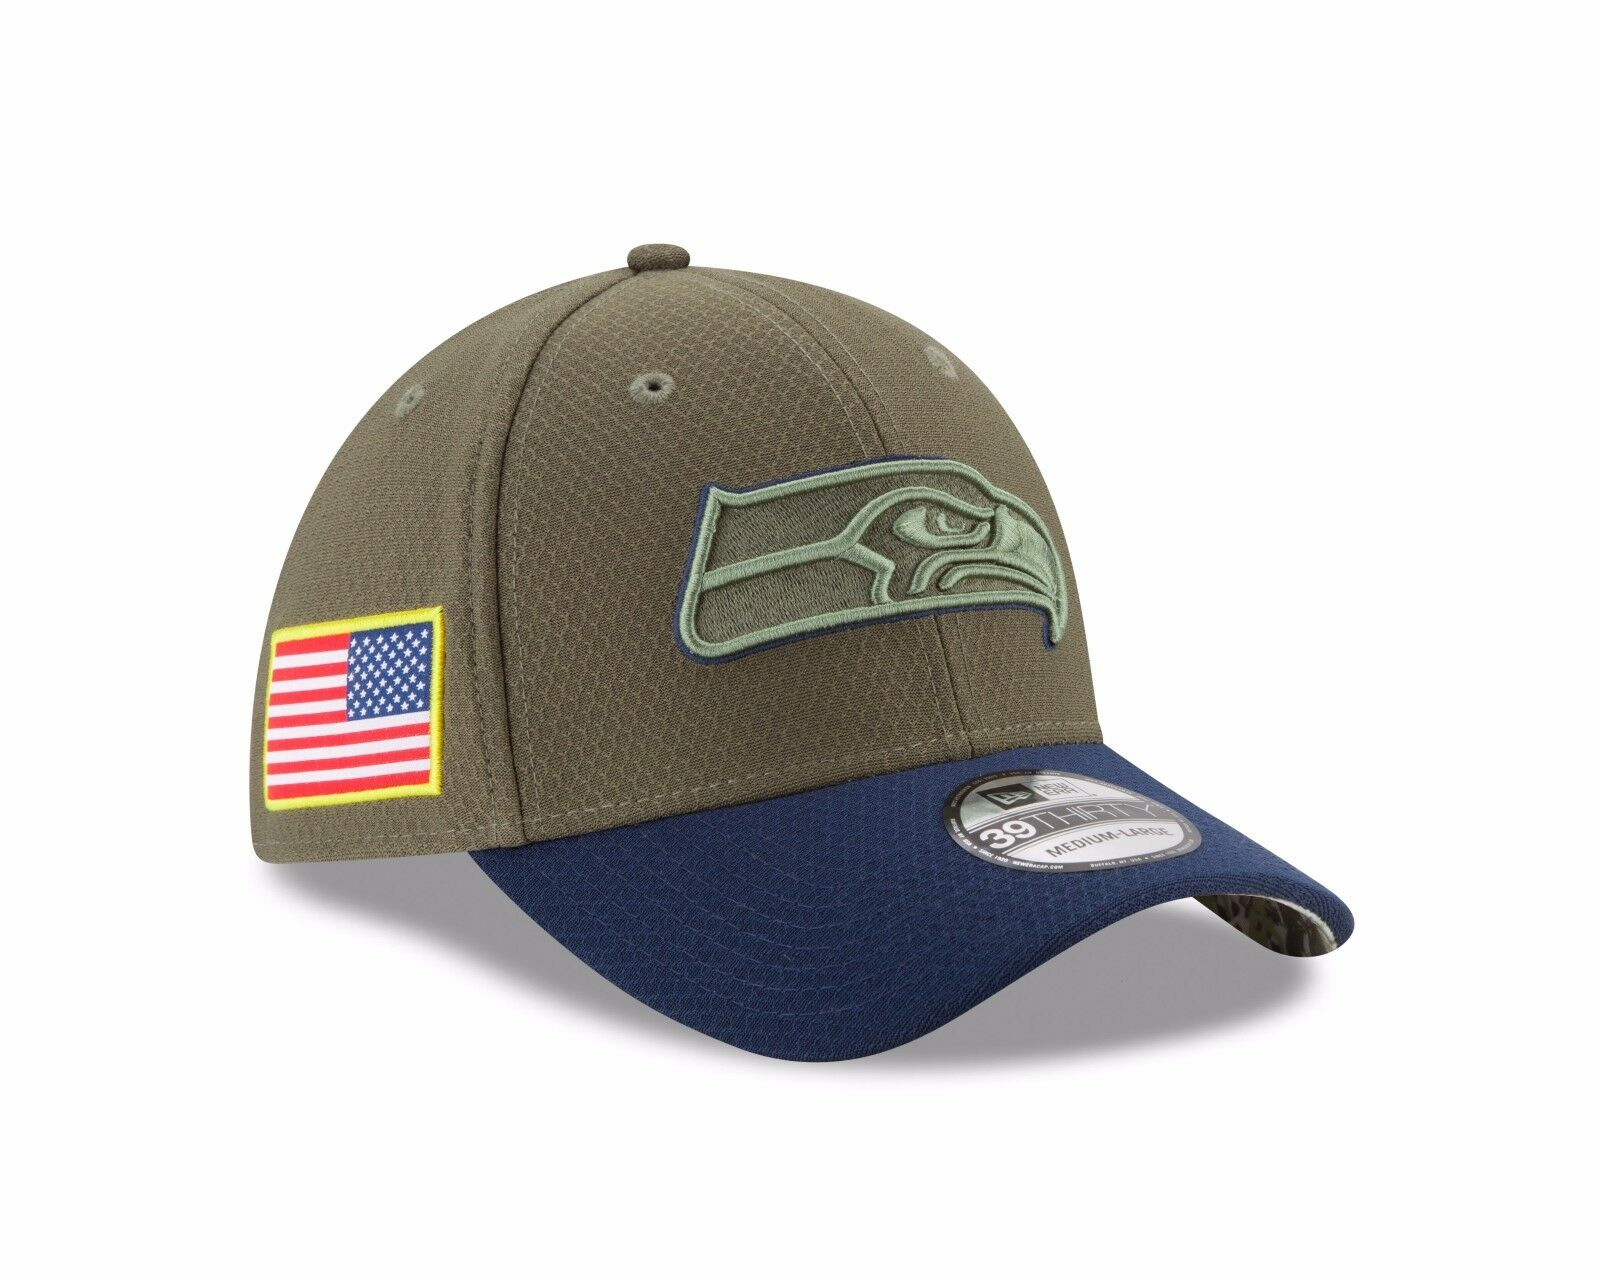 item 3 Seattle Seahawks New Era 2017 Salute To Service 39THIRTY Flex Hat –  Olive -Seattle Seahawks New Era 2017 Salute To Service 39THIRTY Flex Hat –  Olive 4525a9d1a